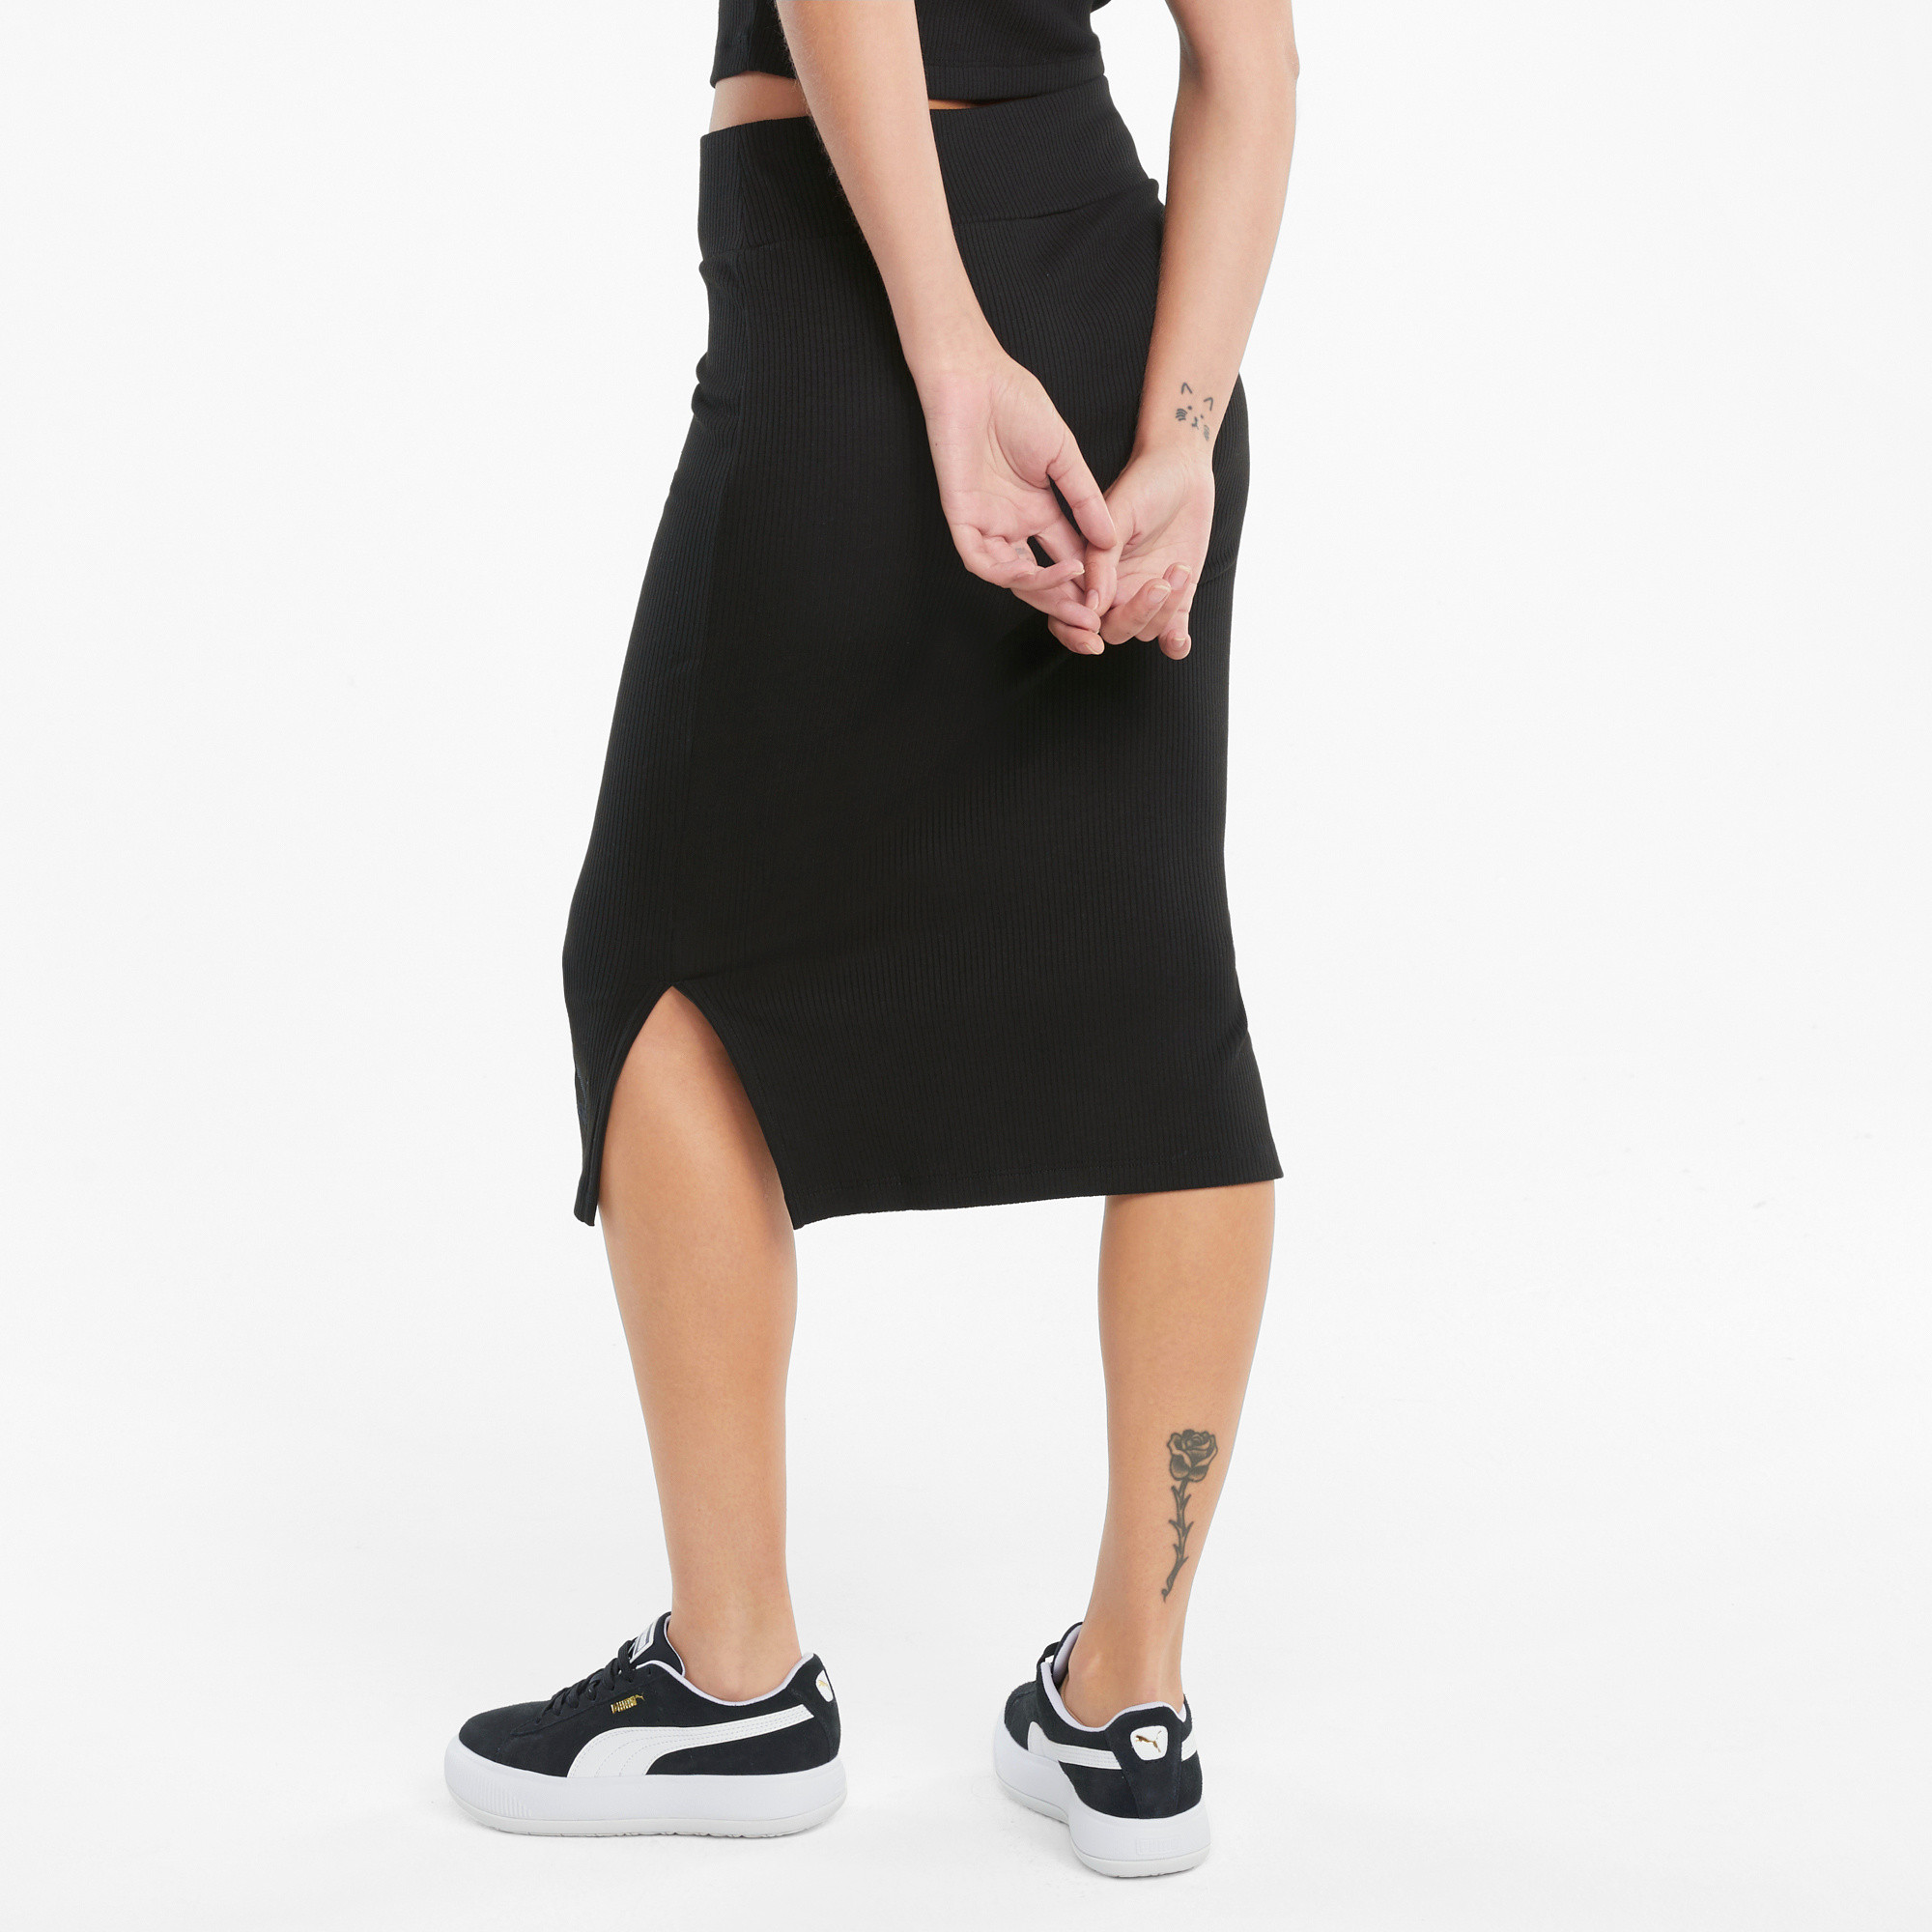 Gonna sportiva midi a coste Classics Collection, Nero, large image number 3